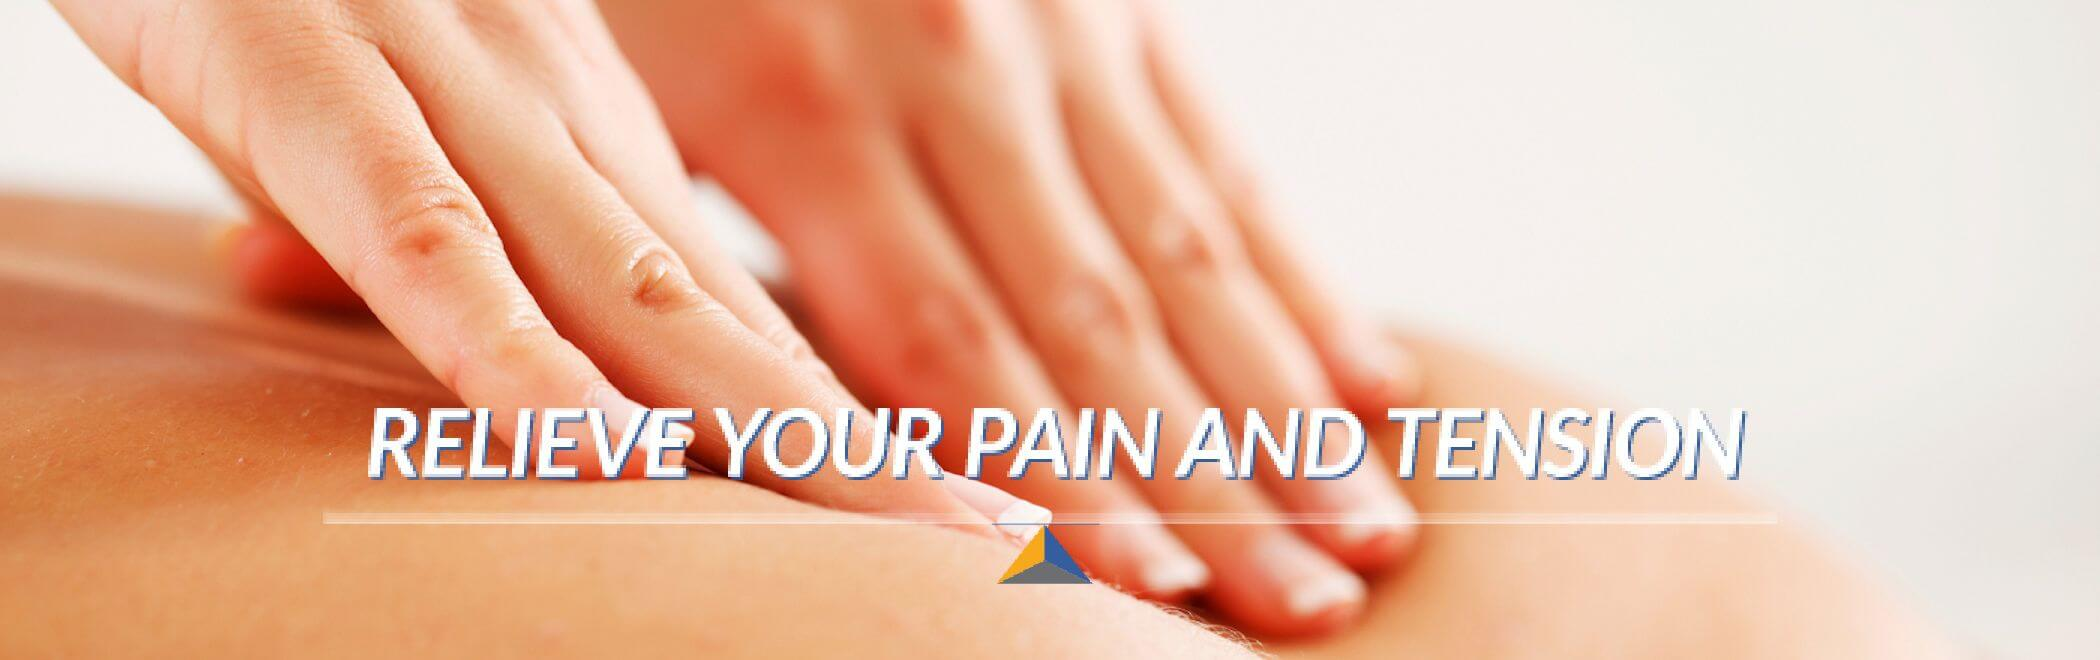 sports massage therapy in downtown toronto